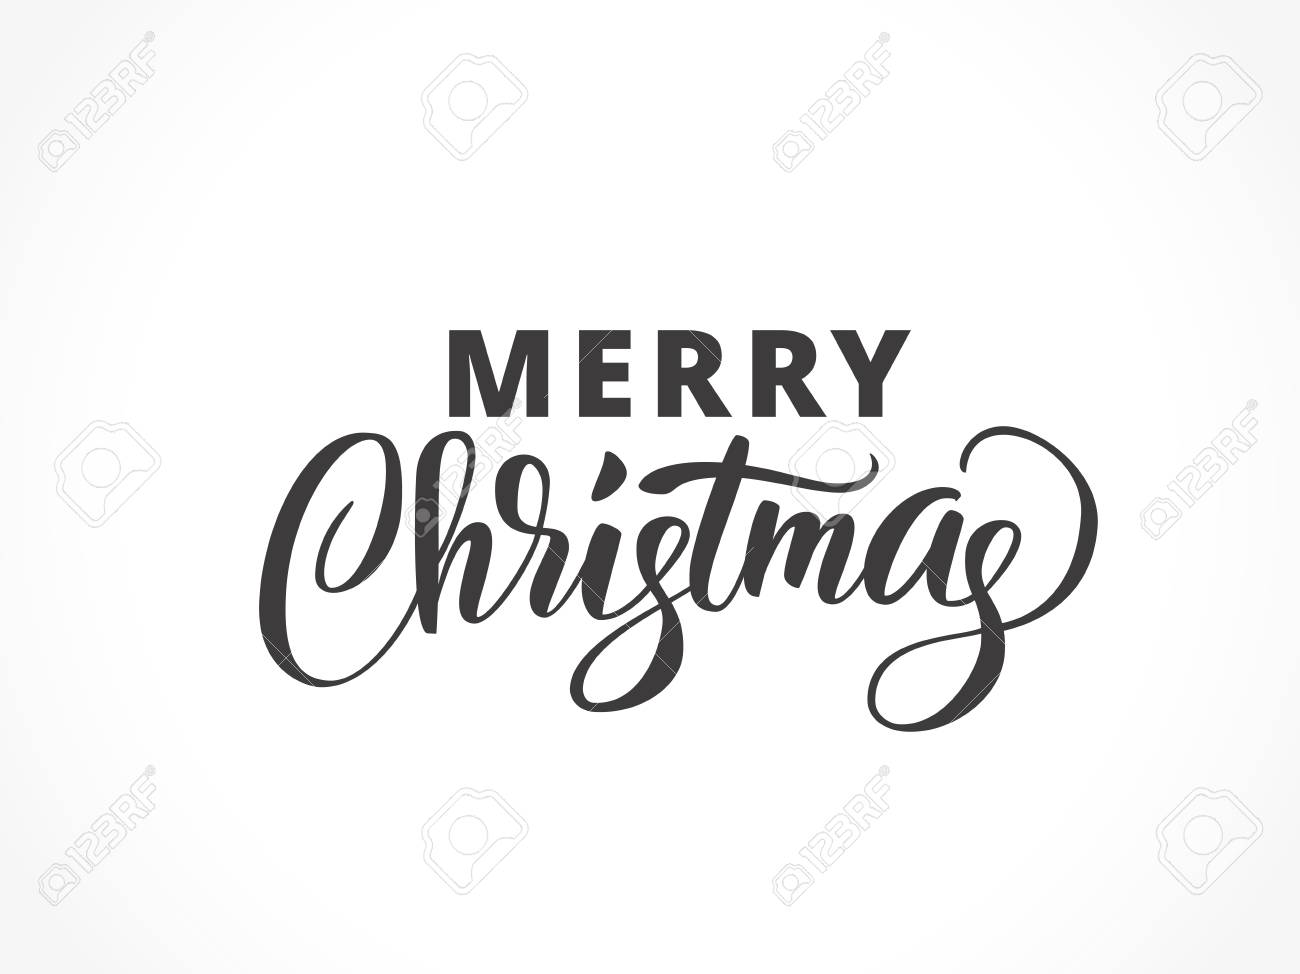 merry christmas typography with brush lettering christmas logo royalty free cliparts vectors and stock illustration image 68810358 merry christmas typography with brush lettering christmas logo royalty free cliparts vectors and stock illustration image 68810358